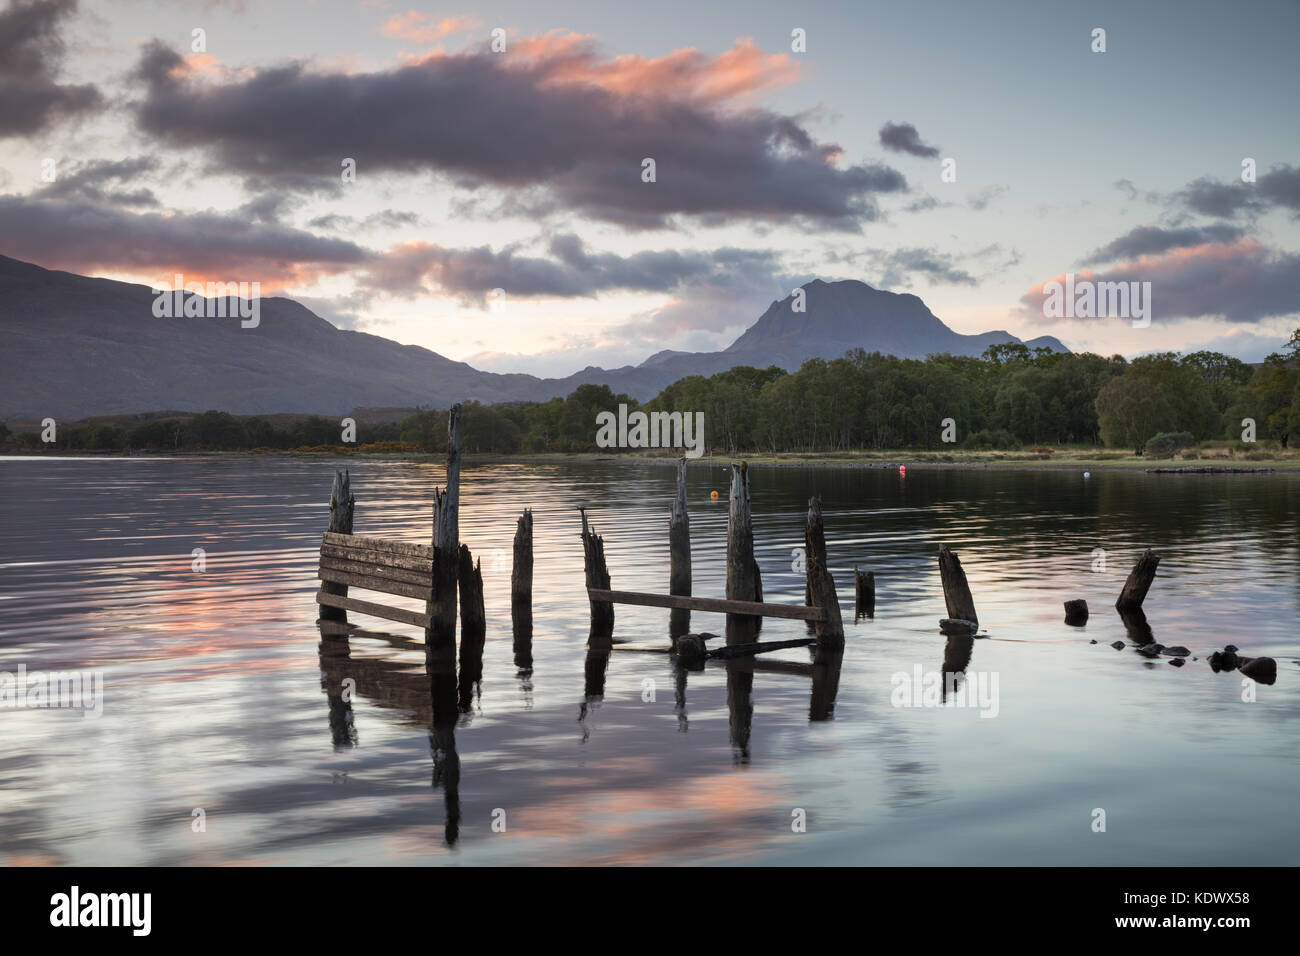 Loch Maree and Slioch, Wester Ross, Scotland, UK - Stock Image